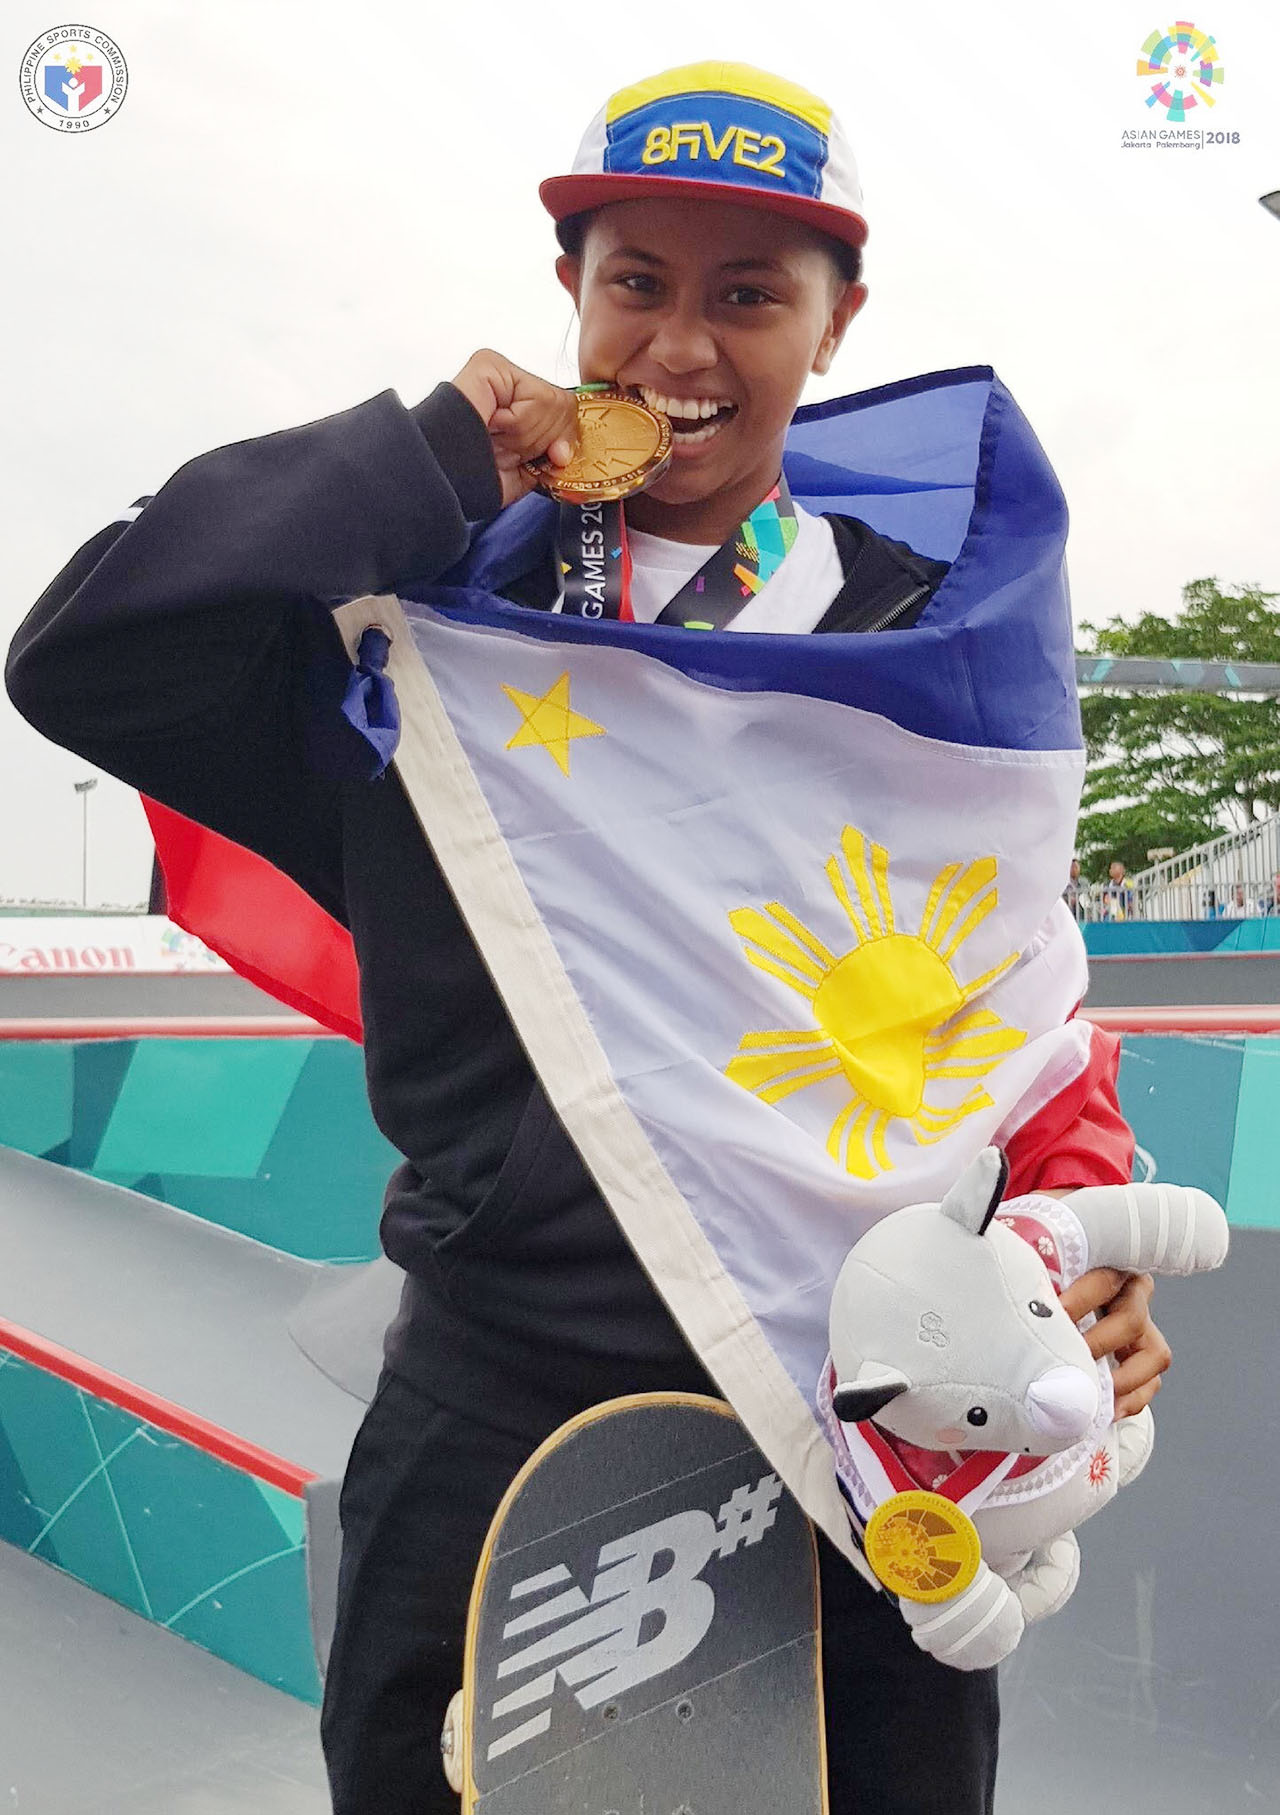 Margielyn Didal skates to 4th PH gold in 2018 Asian Games